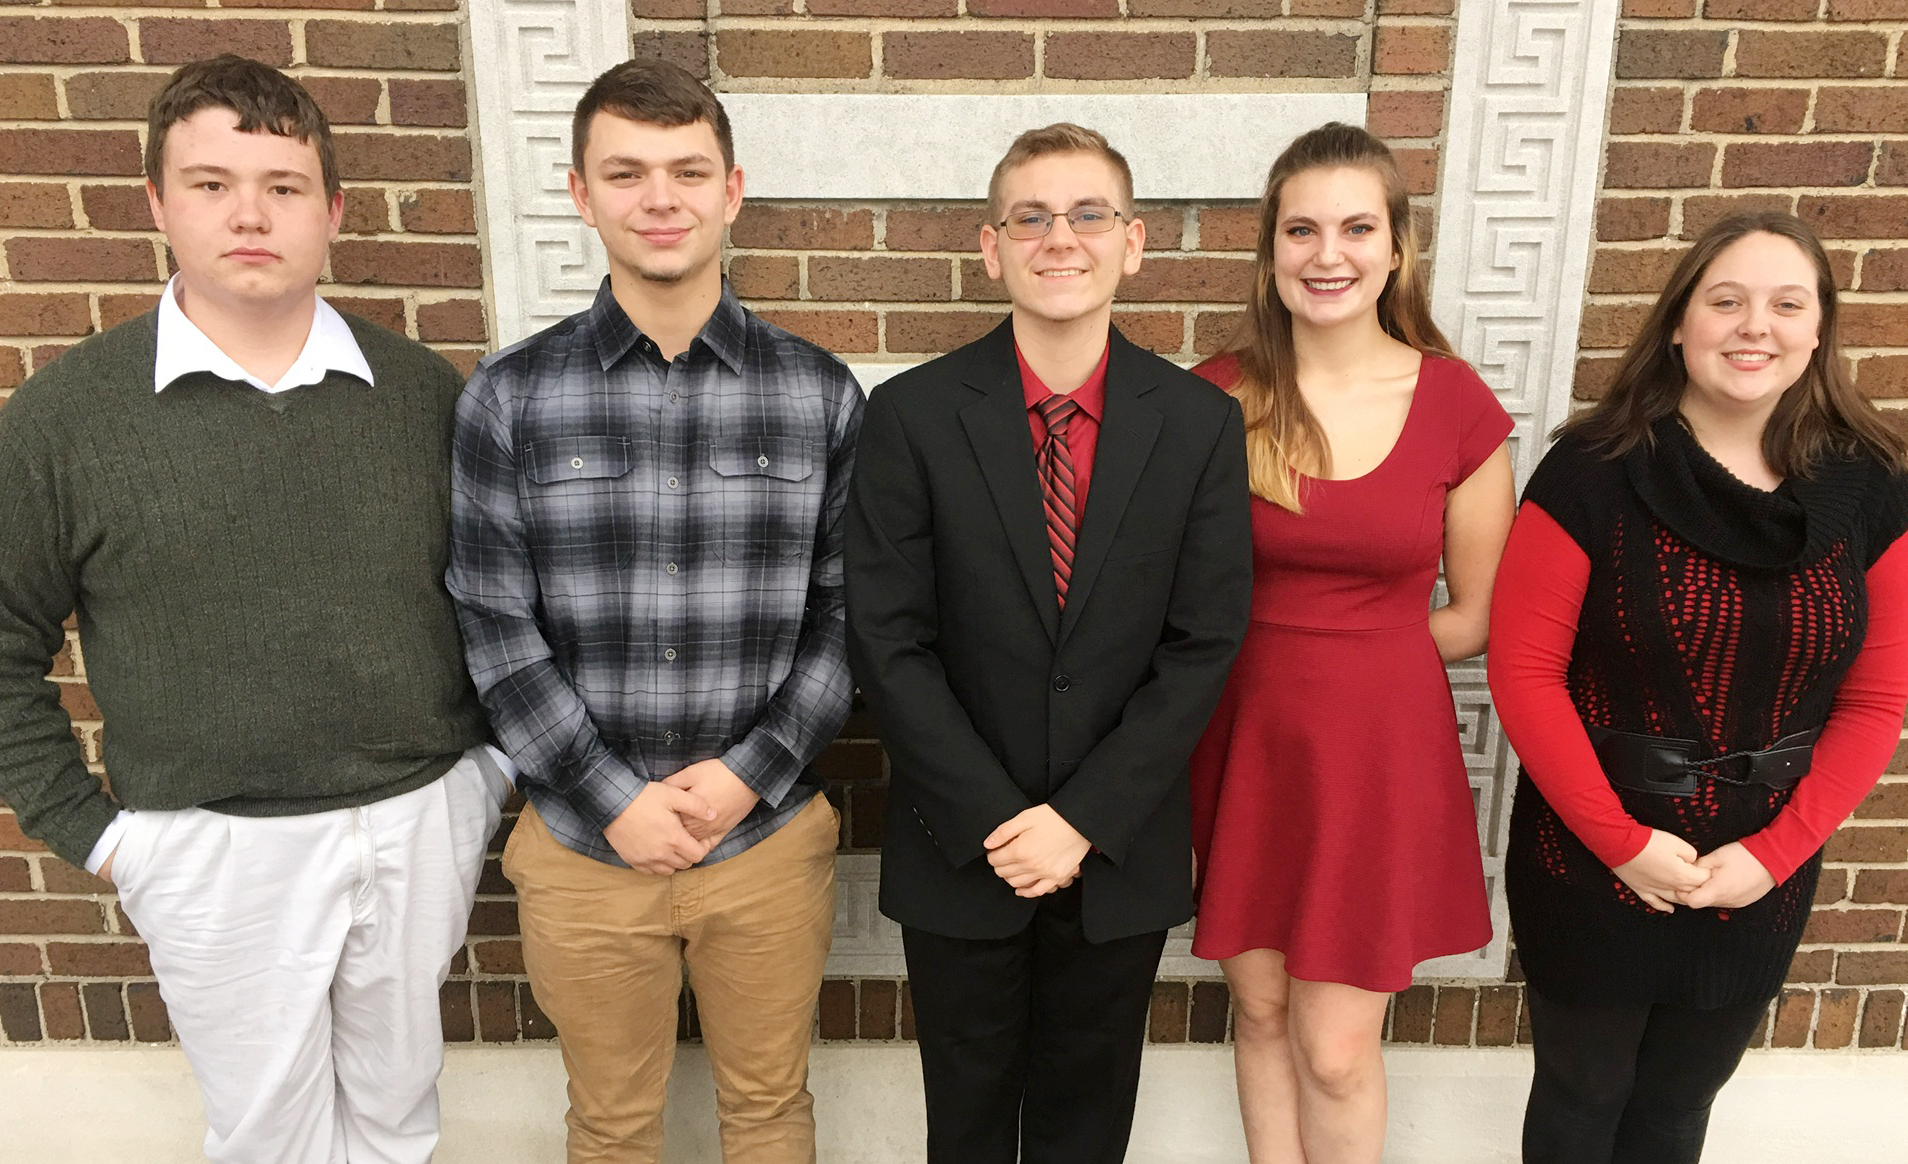 CHS students chosen to participate in the Western Kentucky University Honors Band Clinic include, from left, sophomore Conner Riley, senior Chaz Babbs, junior Brandon Greer, senior Tiffany Kane and junior Ruby Hatfield.